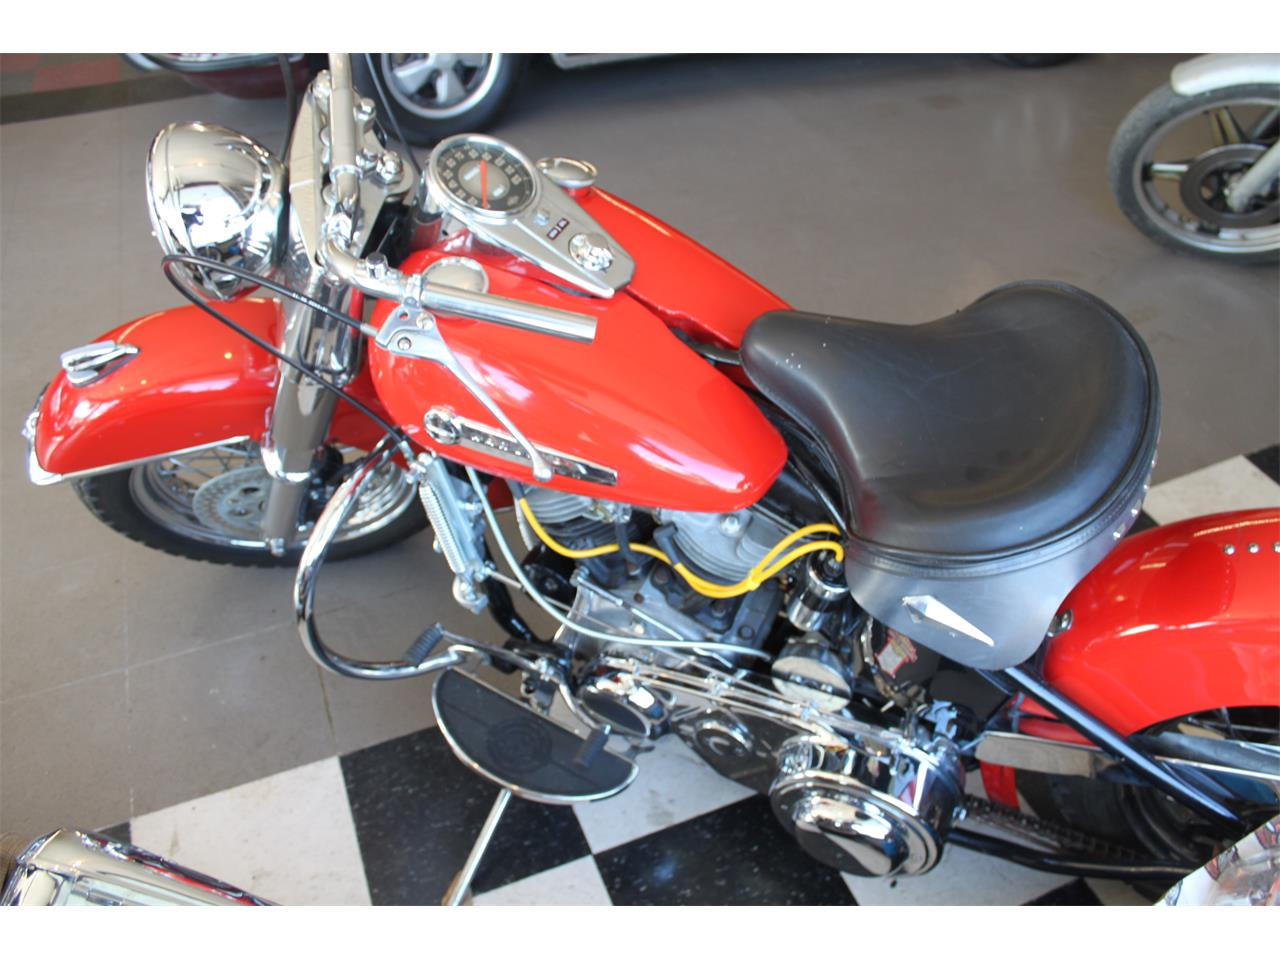 1950 Harley-Davidson Motorcycle for sale in Carnation, WA – photo 4